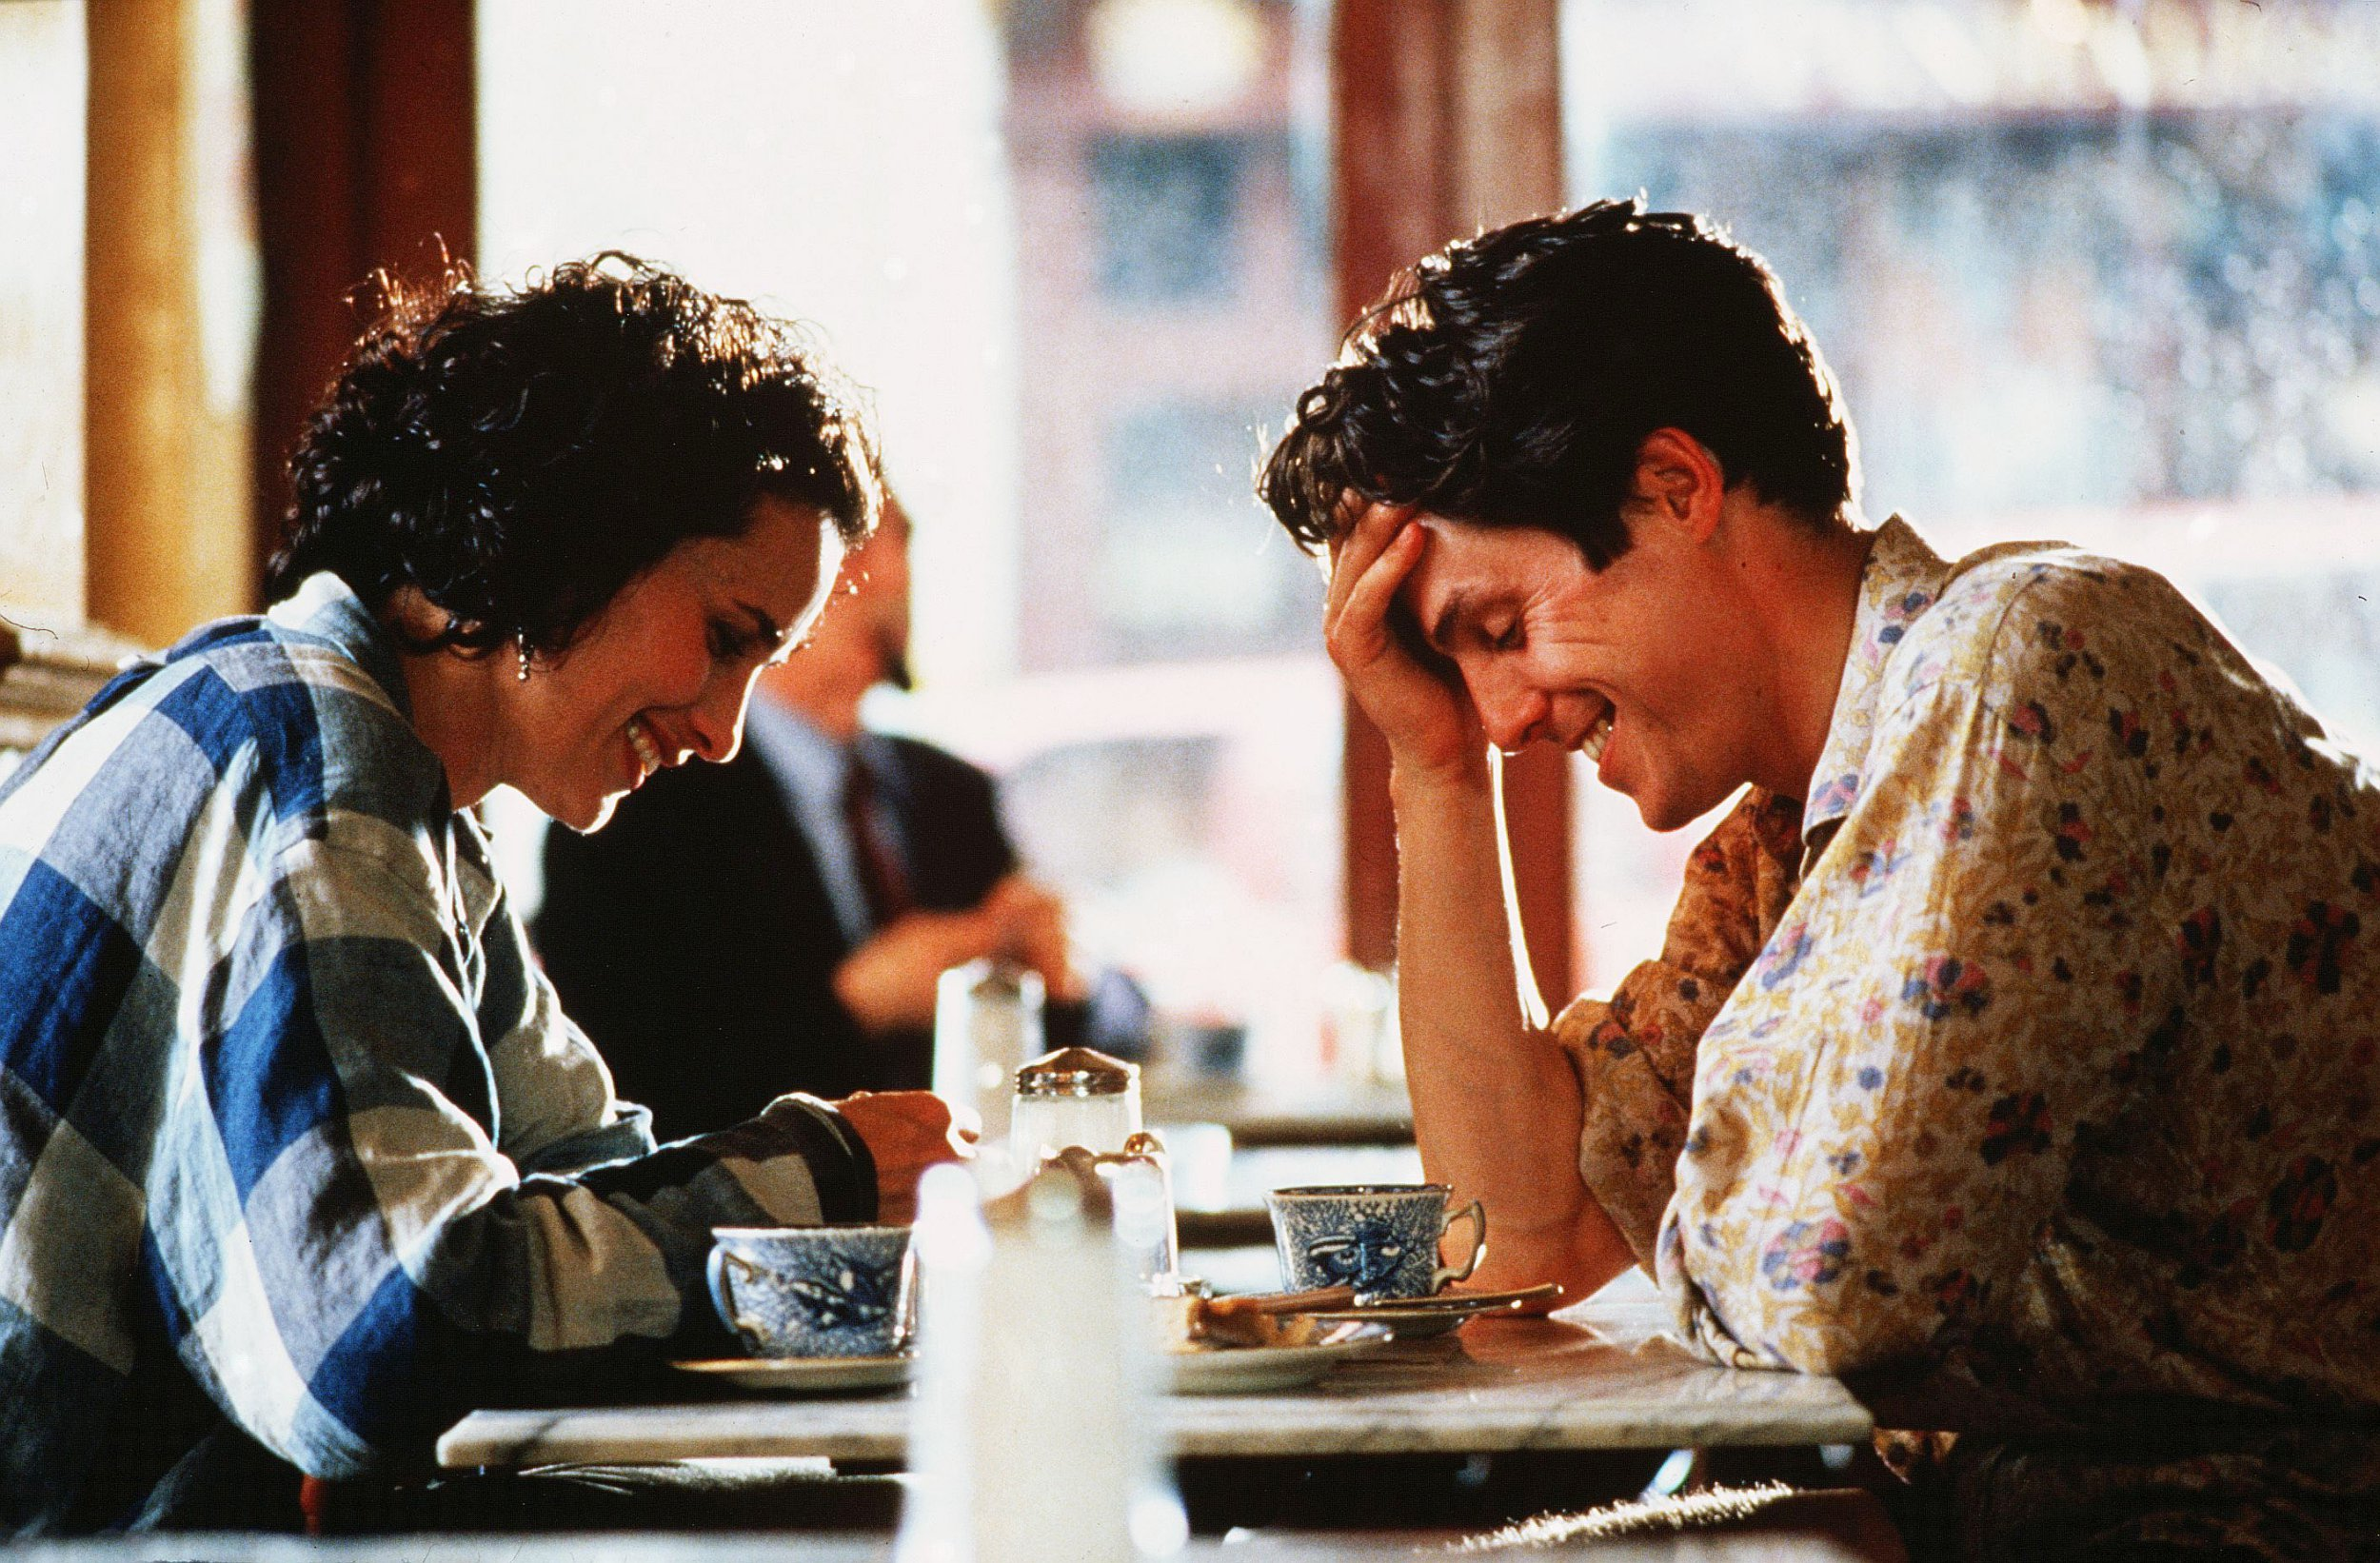 hugh grant and andie macdowell in Four weddings and a funeral